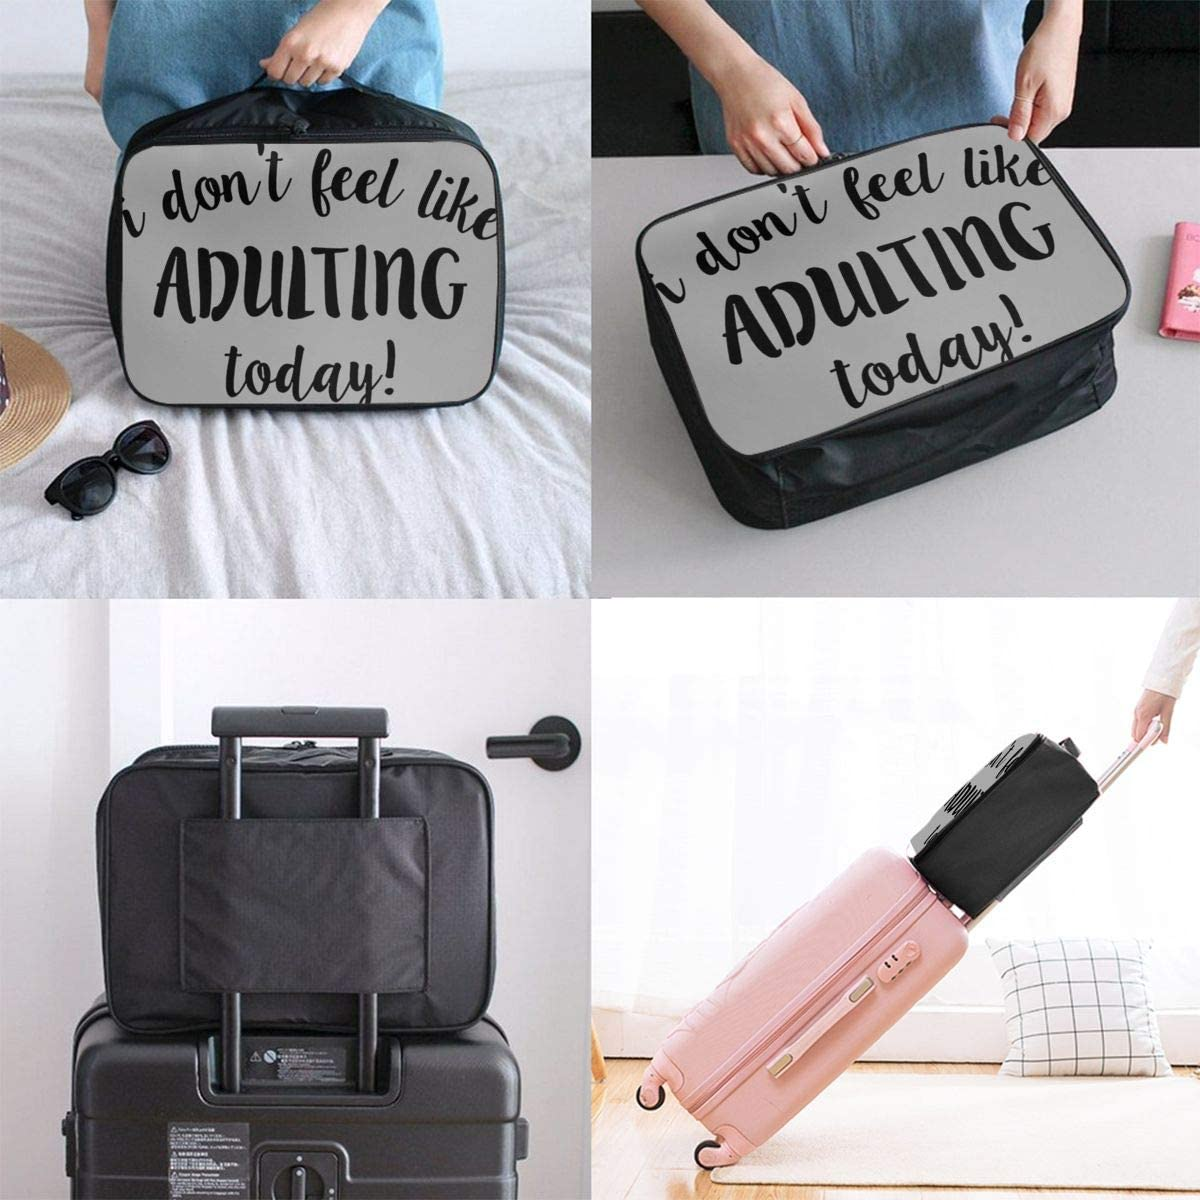 I Dont Feel Like Being An Adult Today Lightweight Large Capacity Portable Luggage Bag Hanging Organizer Bag Makeup Bag